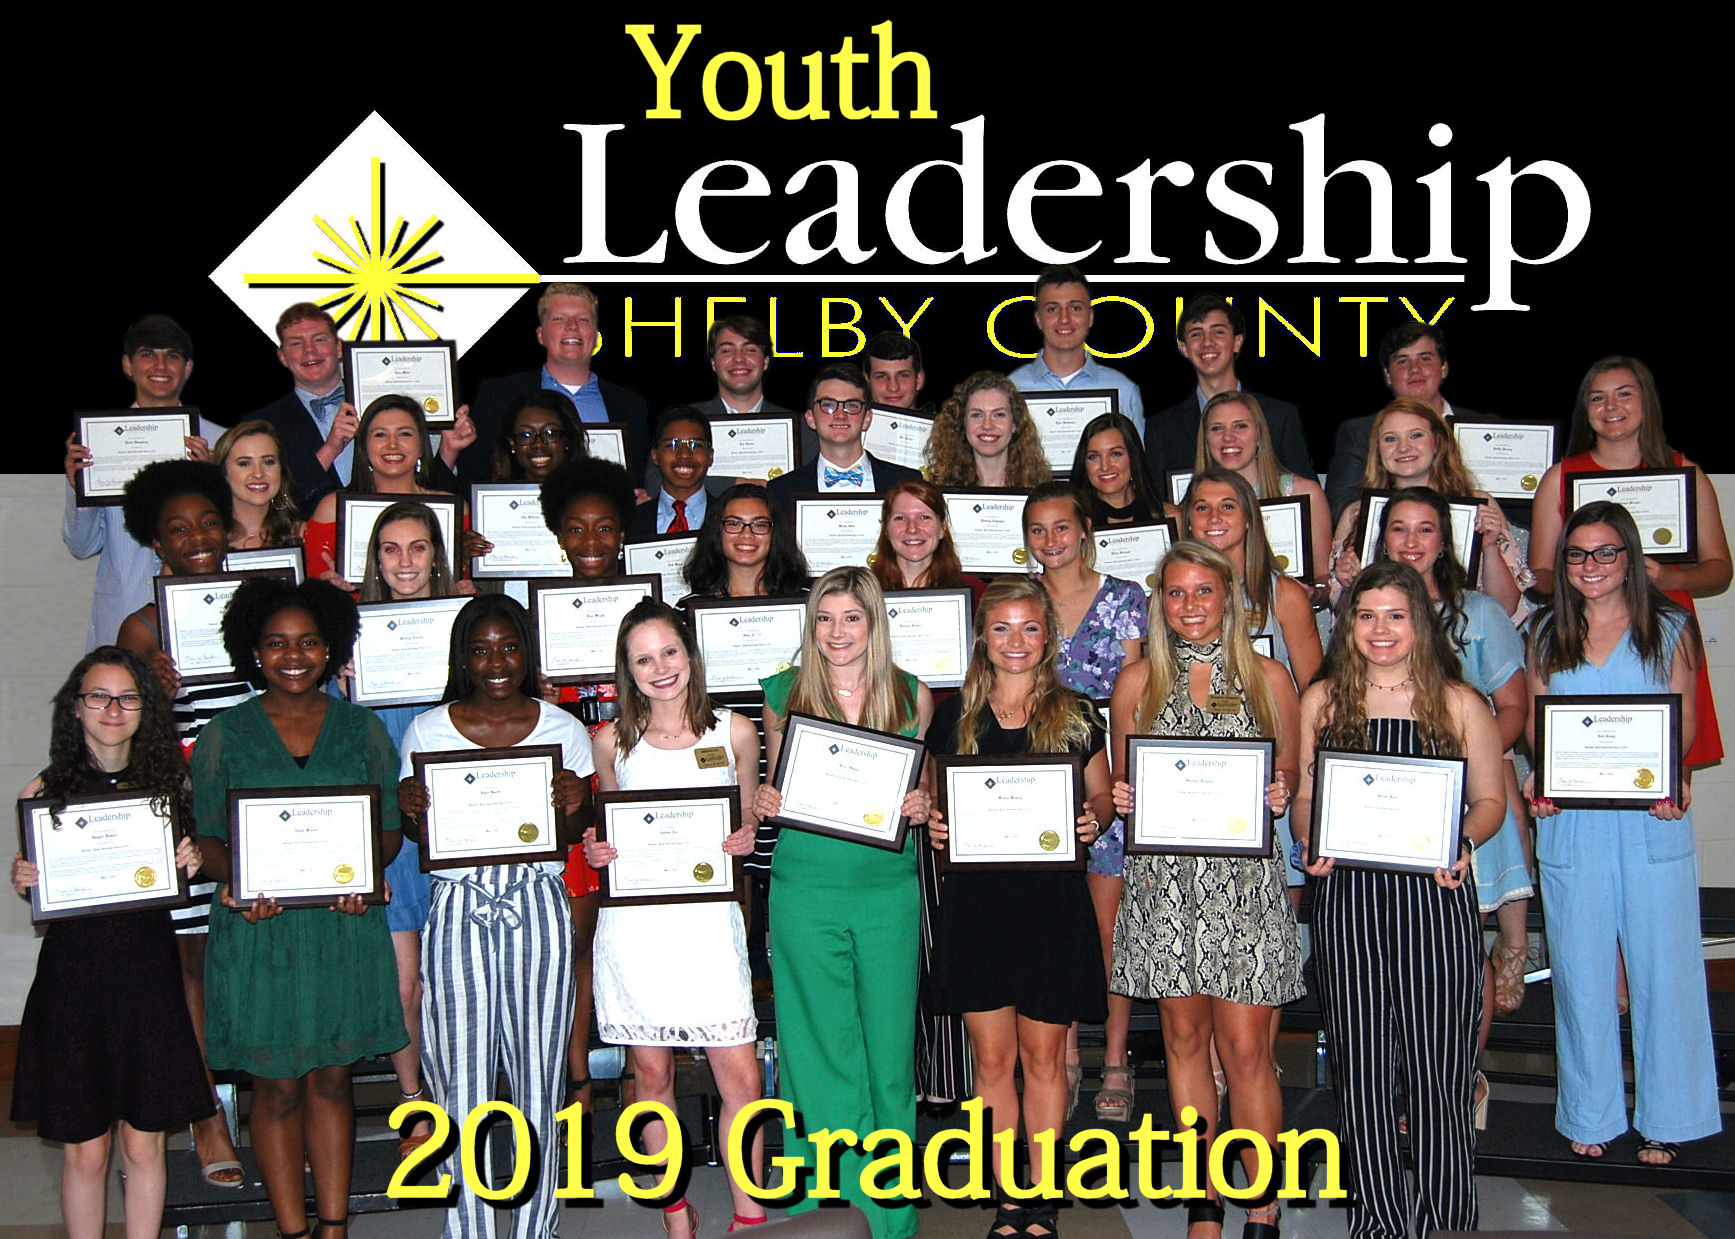 YLSC Group Photo with Diplomas 2019 Graduation Logo